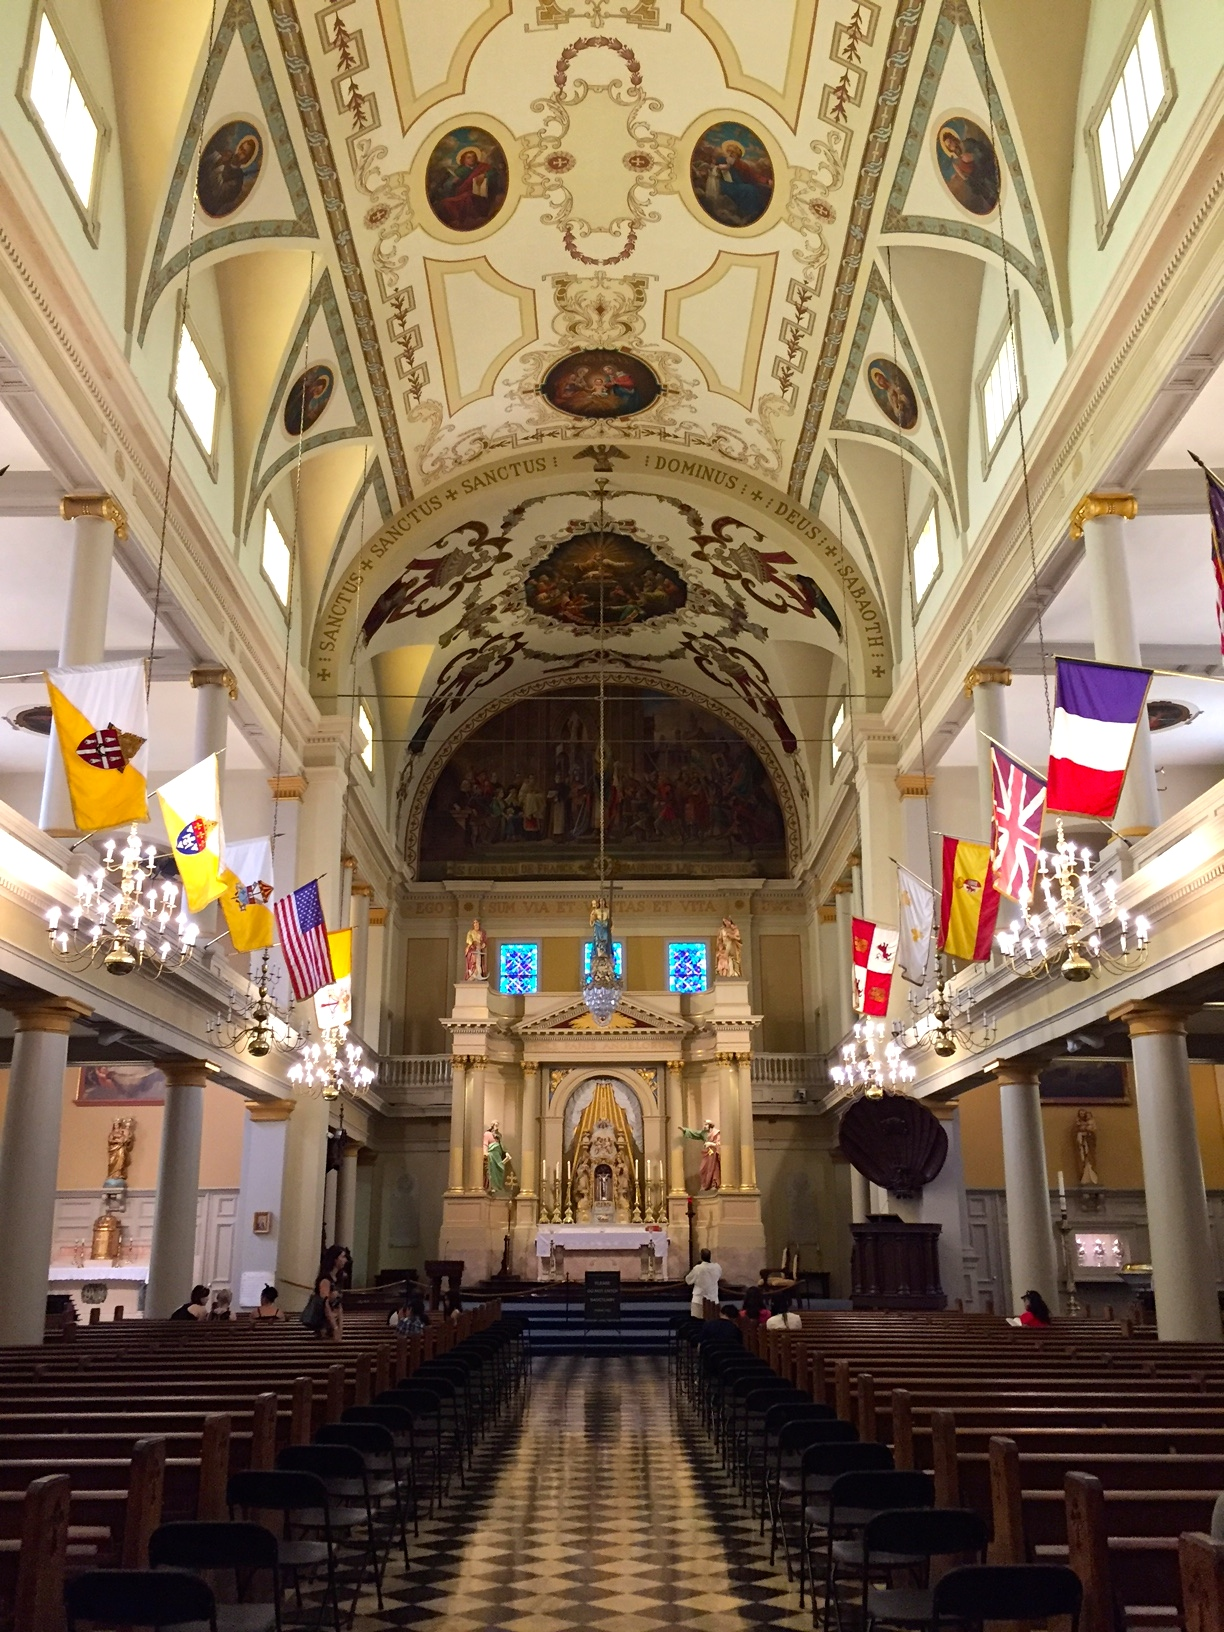 Inside the St. Louis Cathedral in the French Quarter in New Orleans.